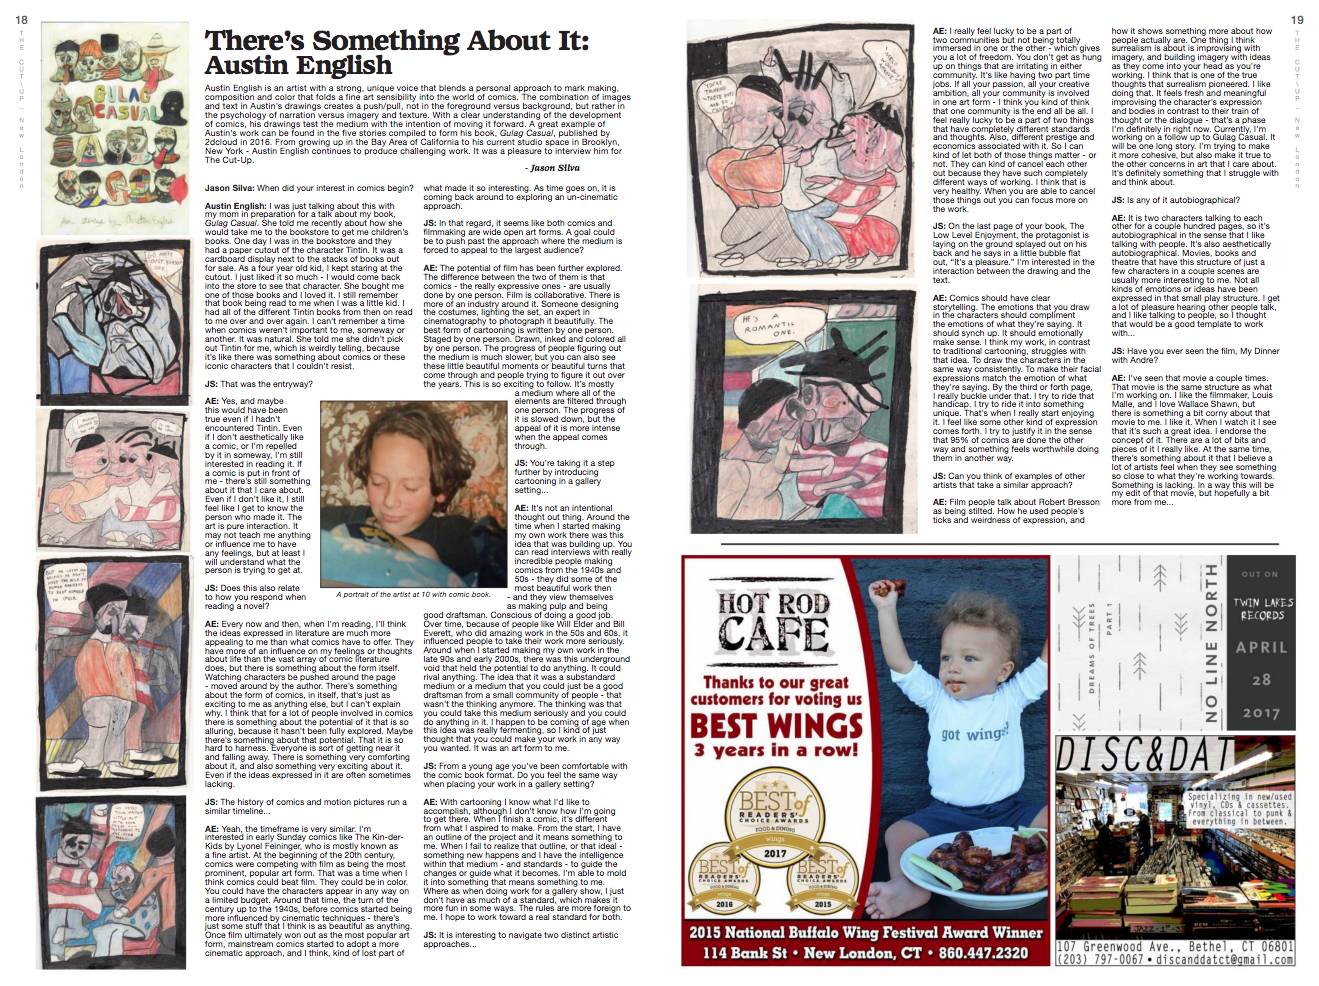 Two-page spread in the Spring 2017 issue of The Cut-Up.